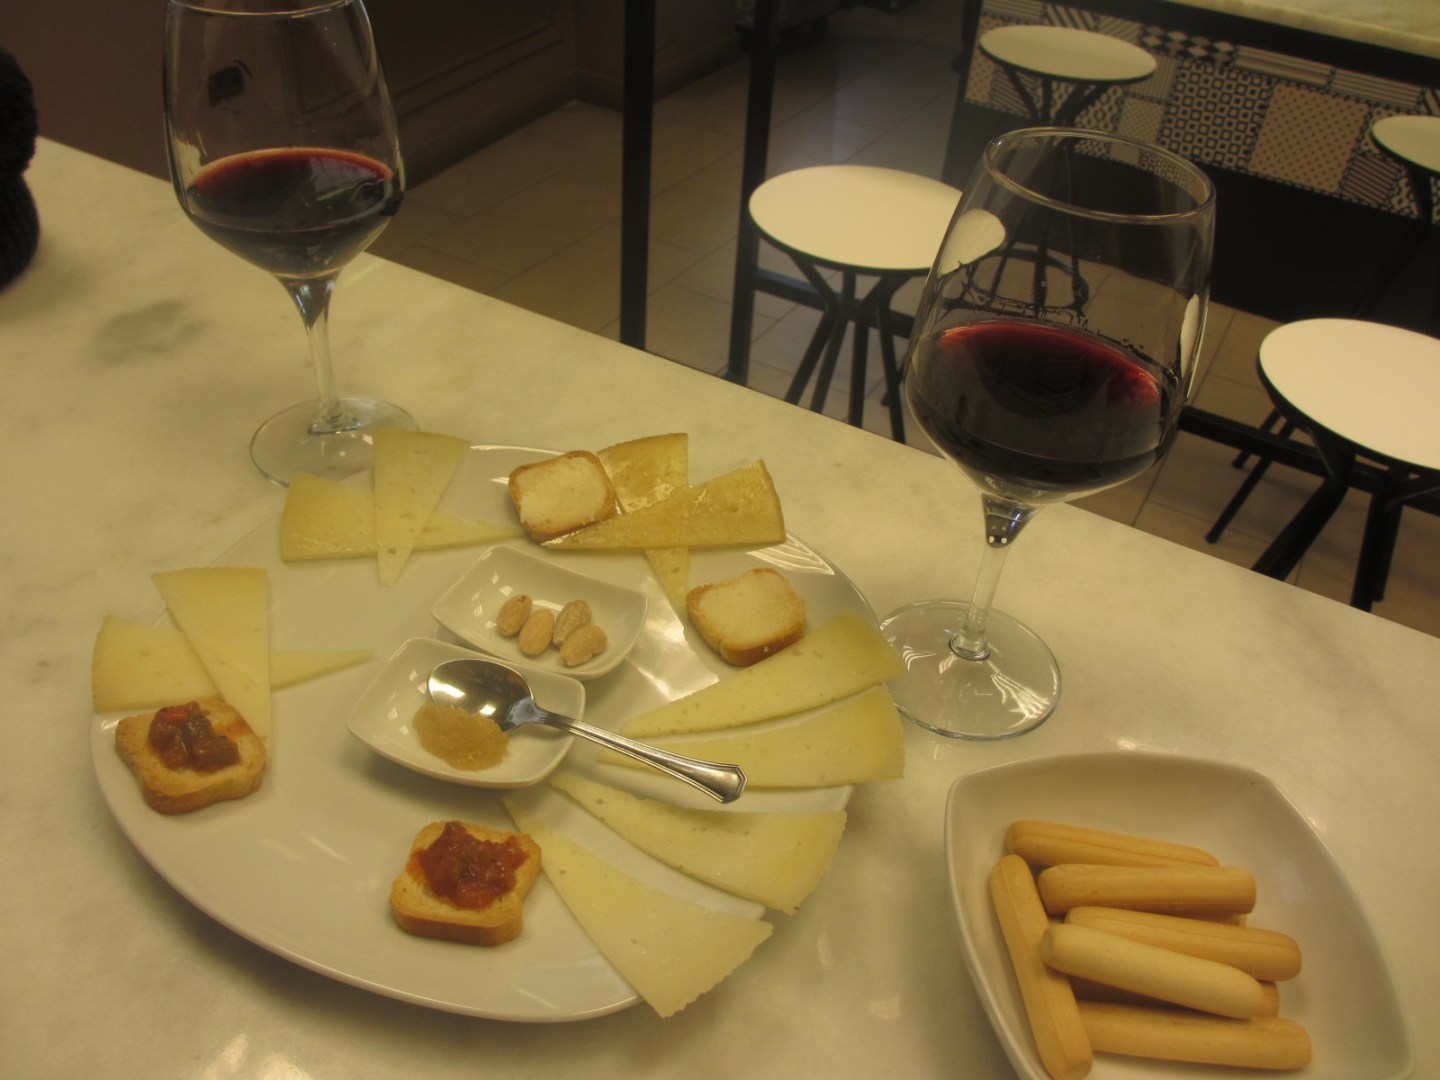 Toledo cheese and wine